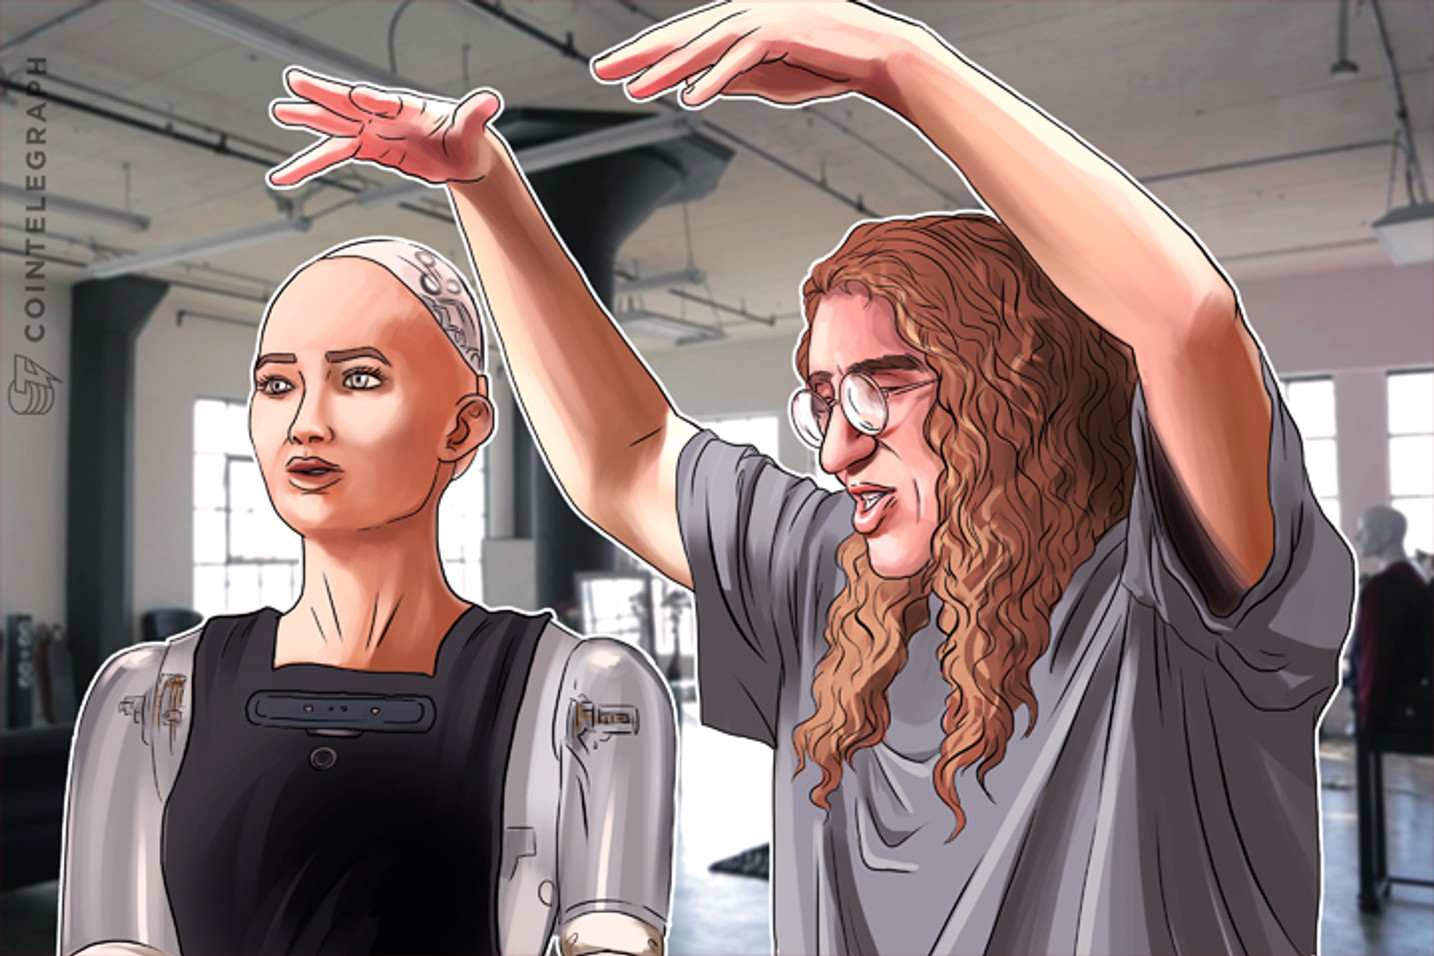 Ben Goertzel on How Blockchain Can be Used to Decentralize Artificial Intelligence